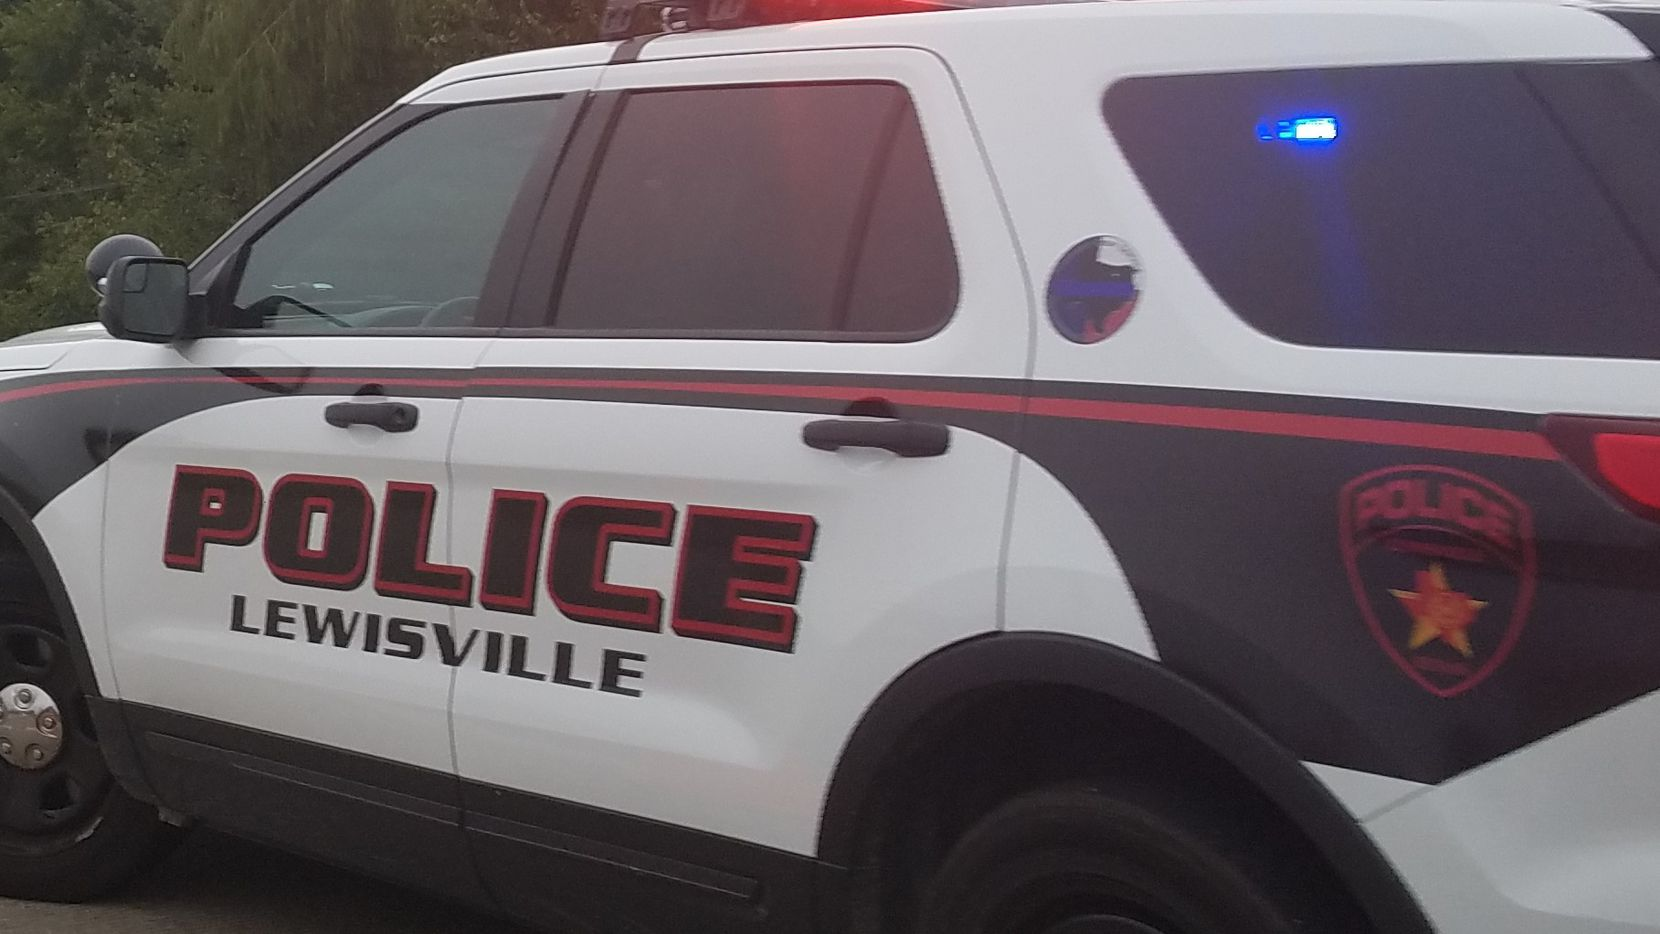 A Lewisville police car is pictured in this file photo.